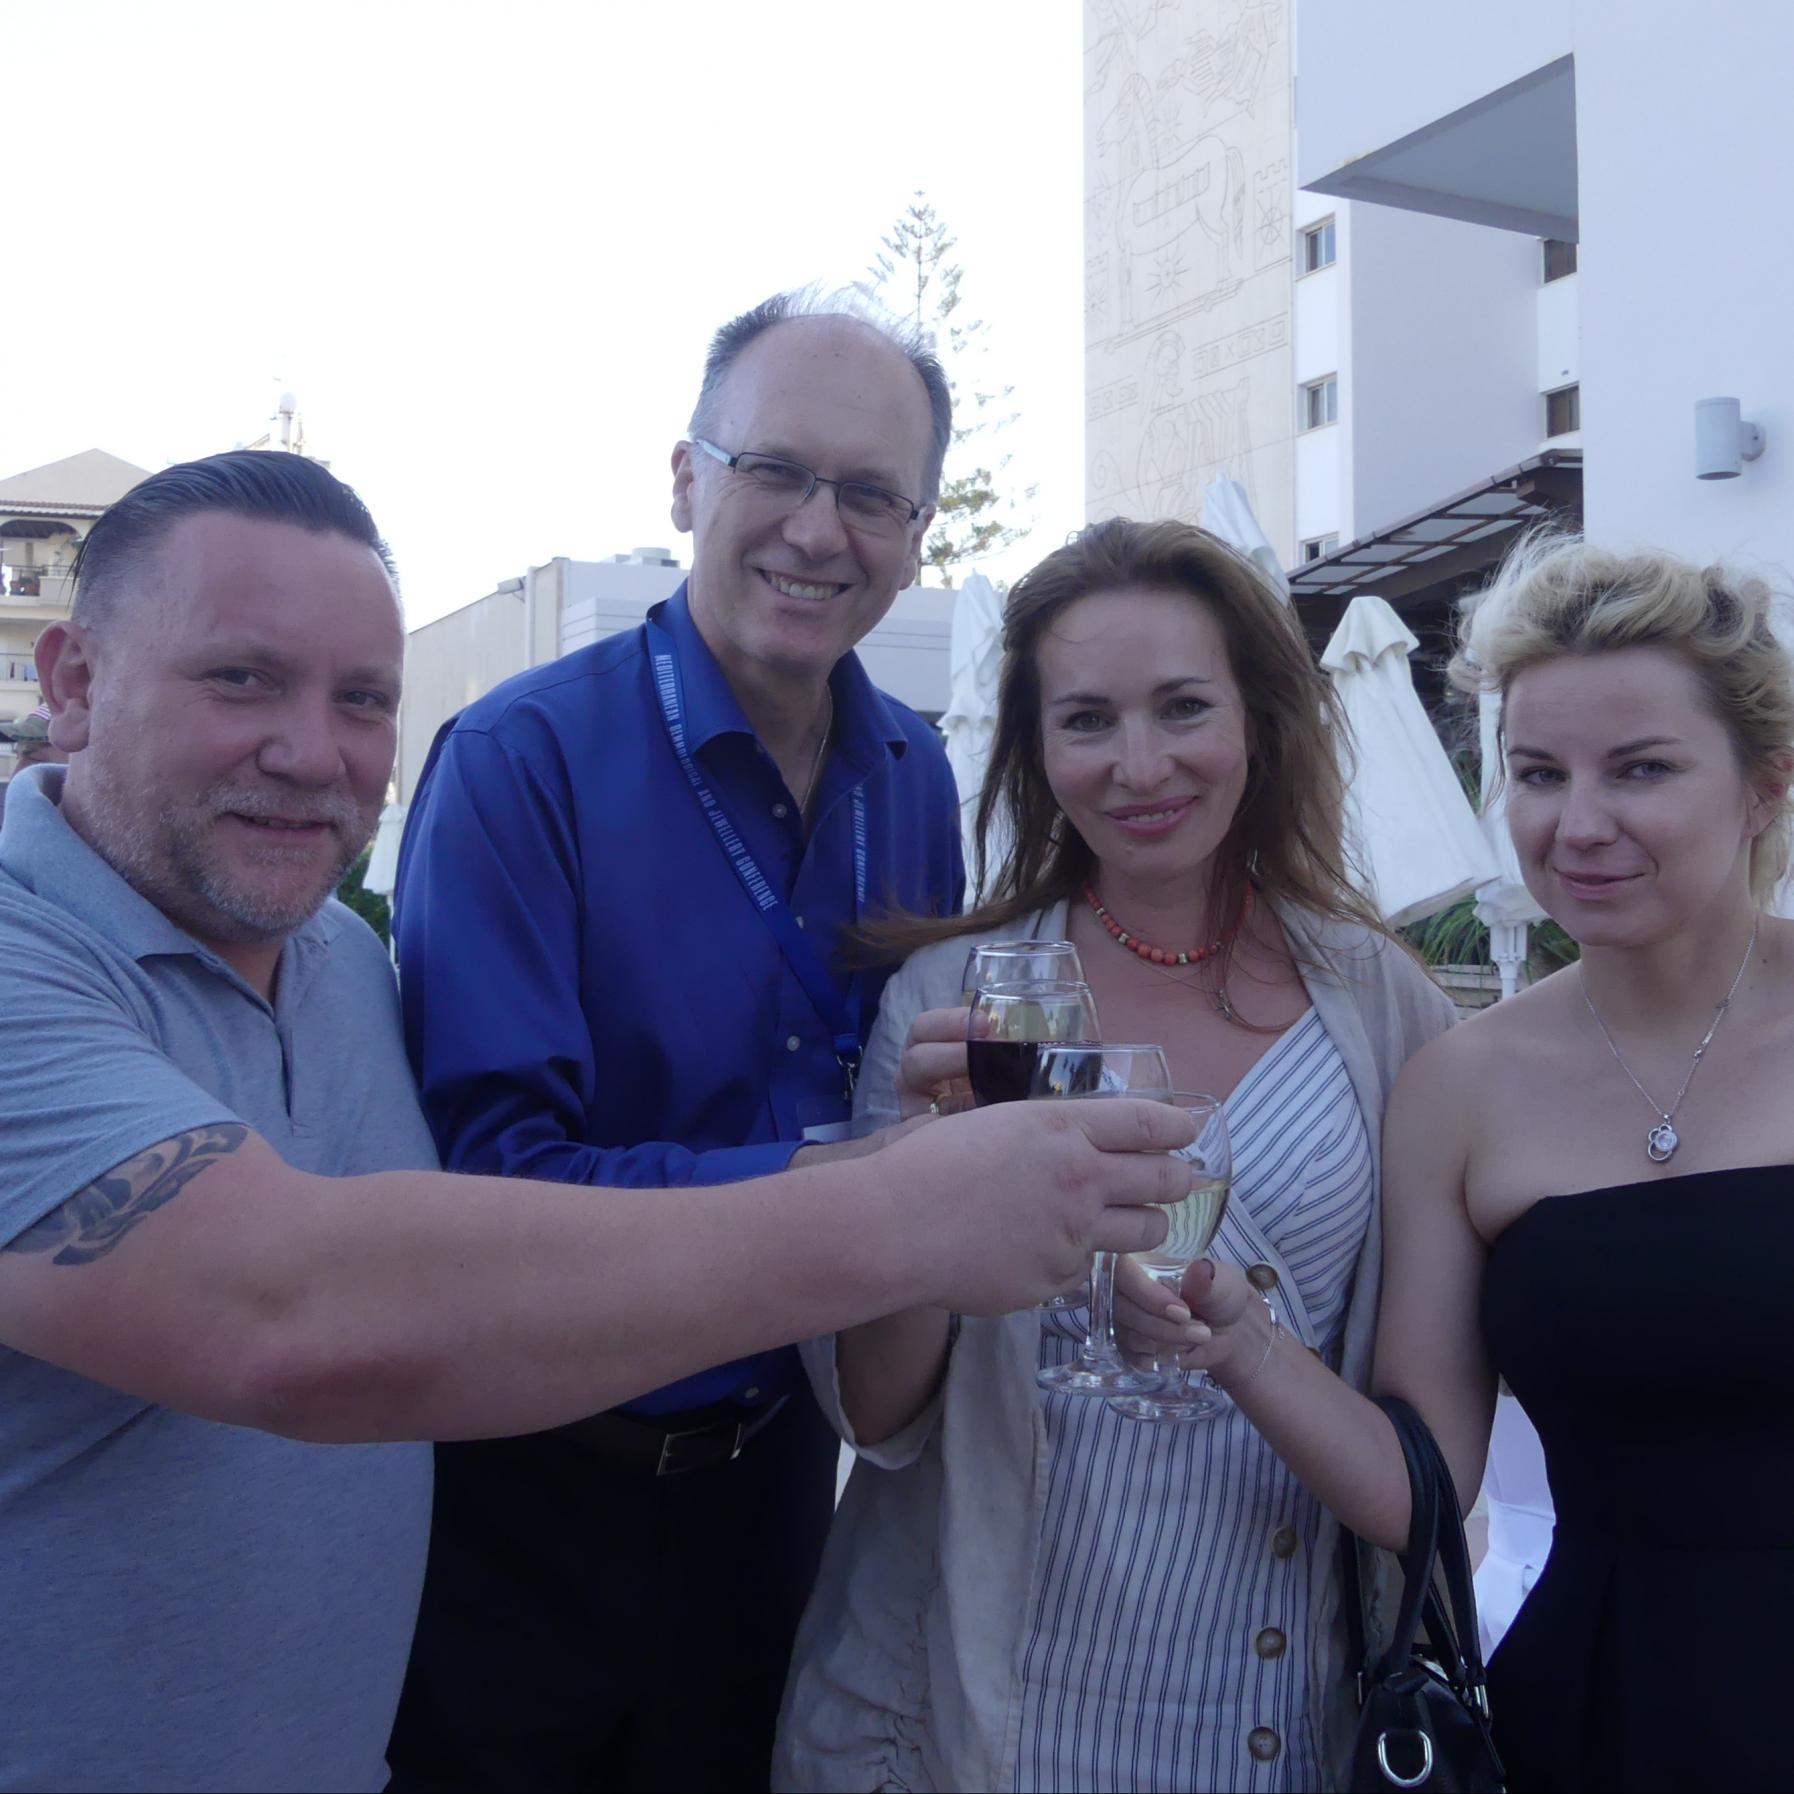 Andrey, Branko, Elena and Julia from Tais HK